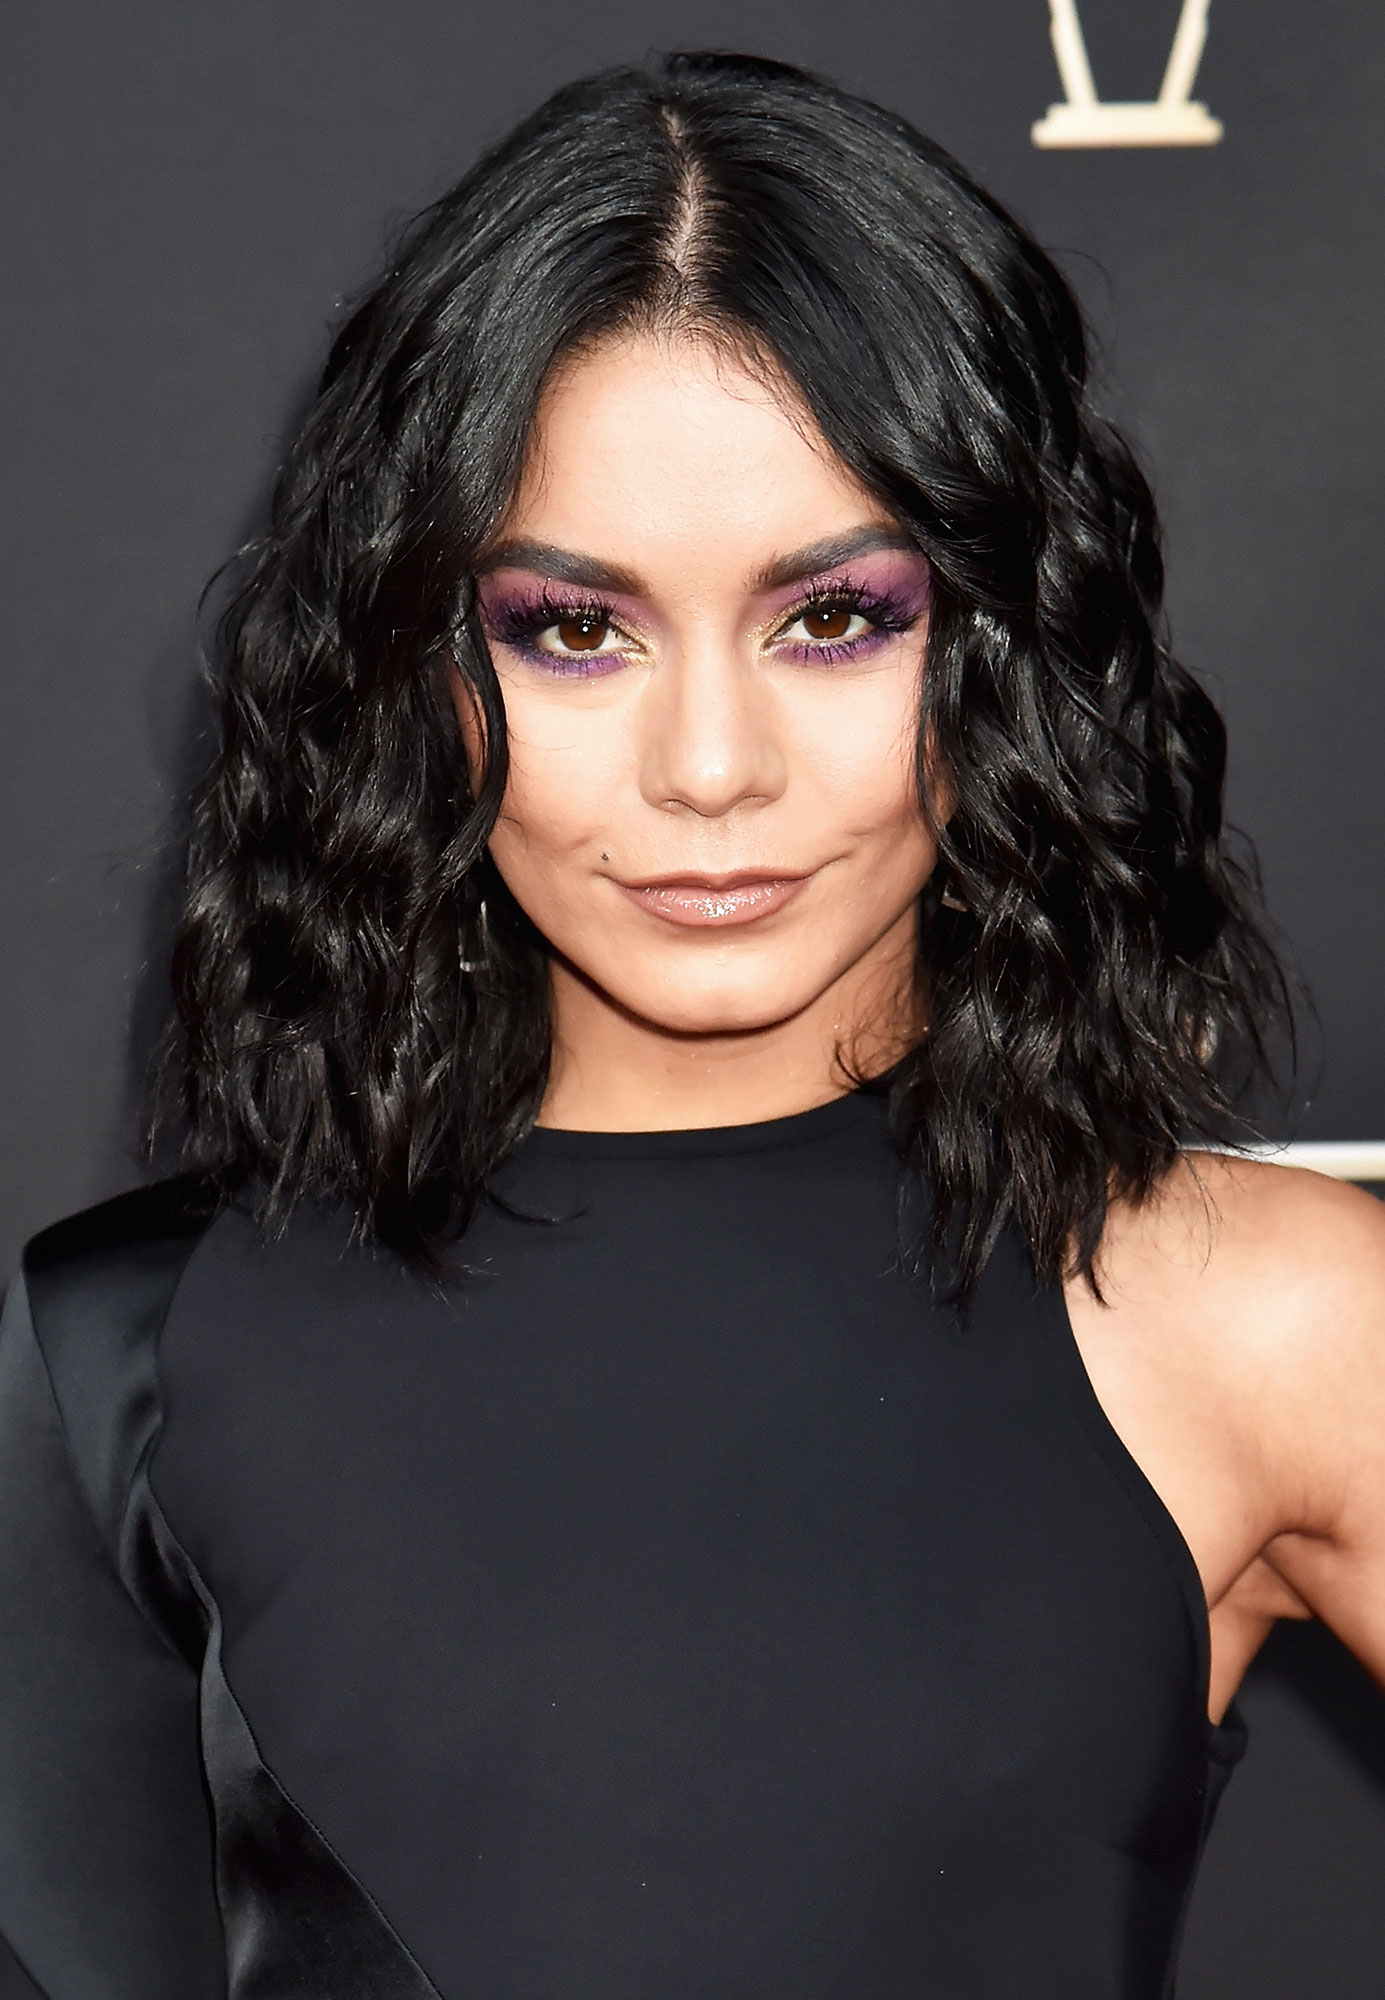 Vanessa Hudgens Celebs Are Here With All the Coachella Beauty Inspo You Need - Purple rain! Rather than keep the color merely on the lid makeup artist Allan Avendaño used a metallic golden shade on the Rent Live star's lids at the 2019 NFL Honors awards before smoking out a shimmering plum hue up to the brow bone and down around the lower lash line.